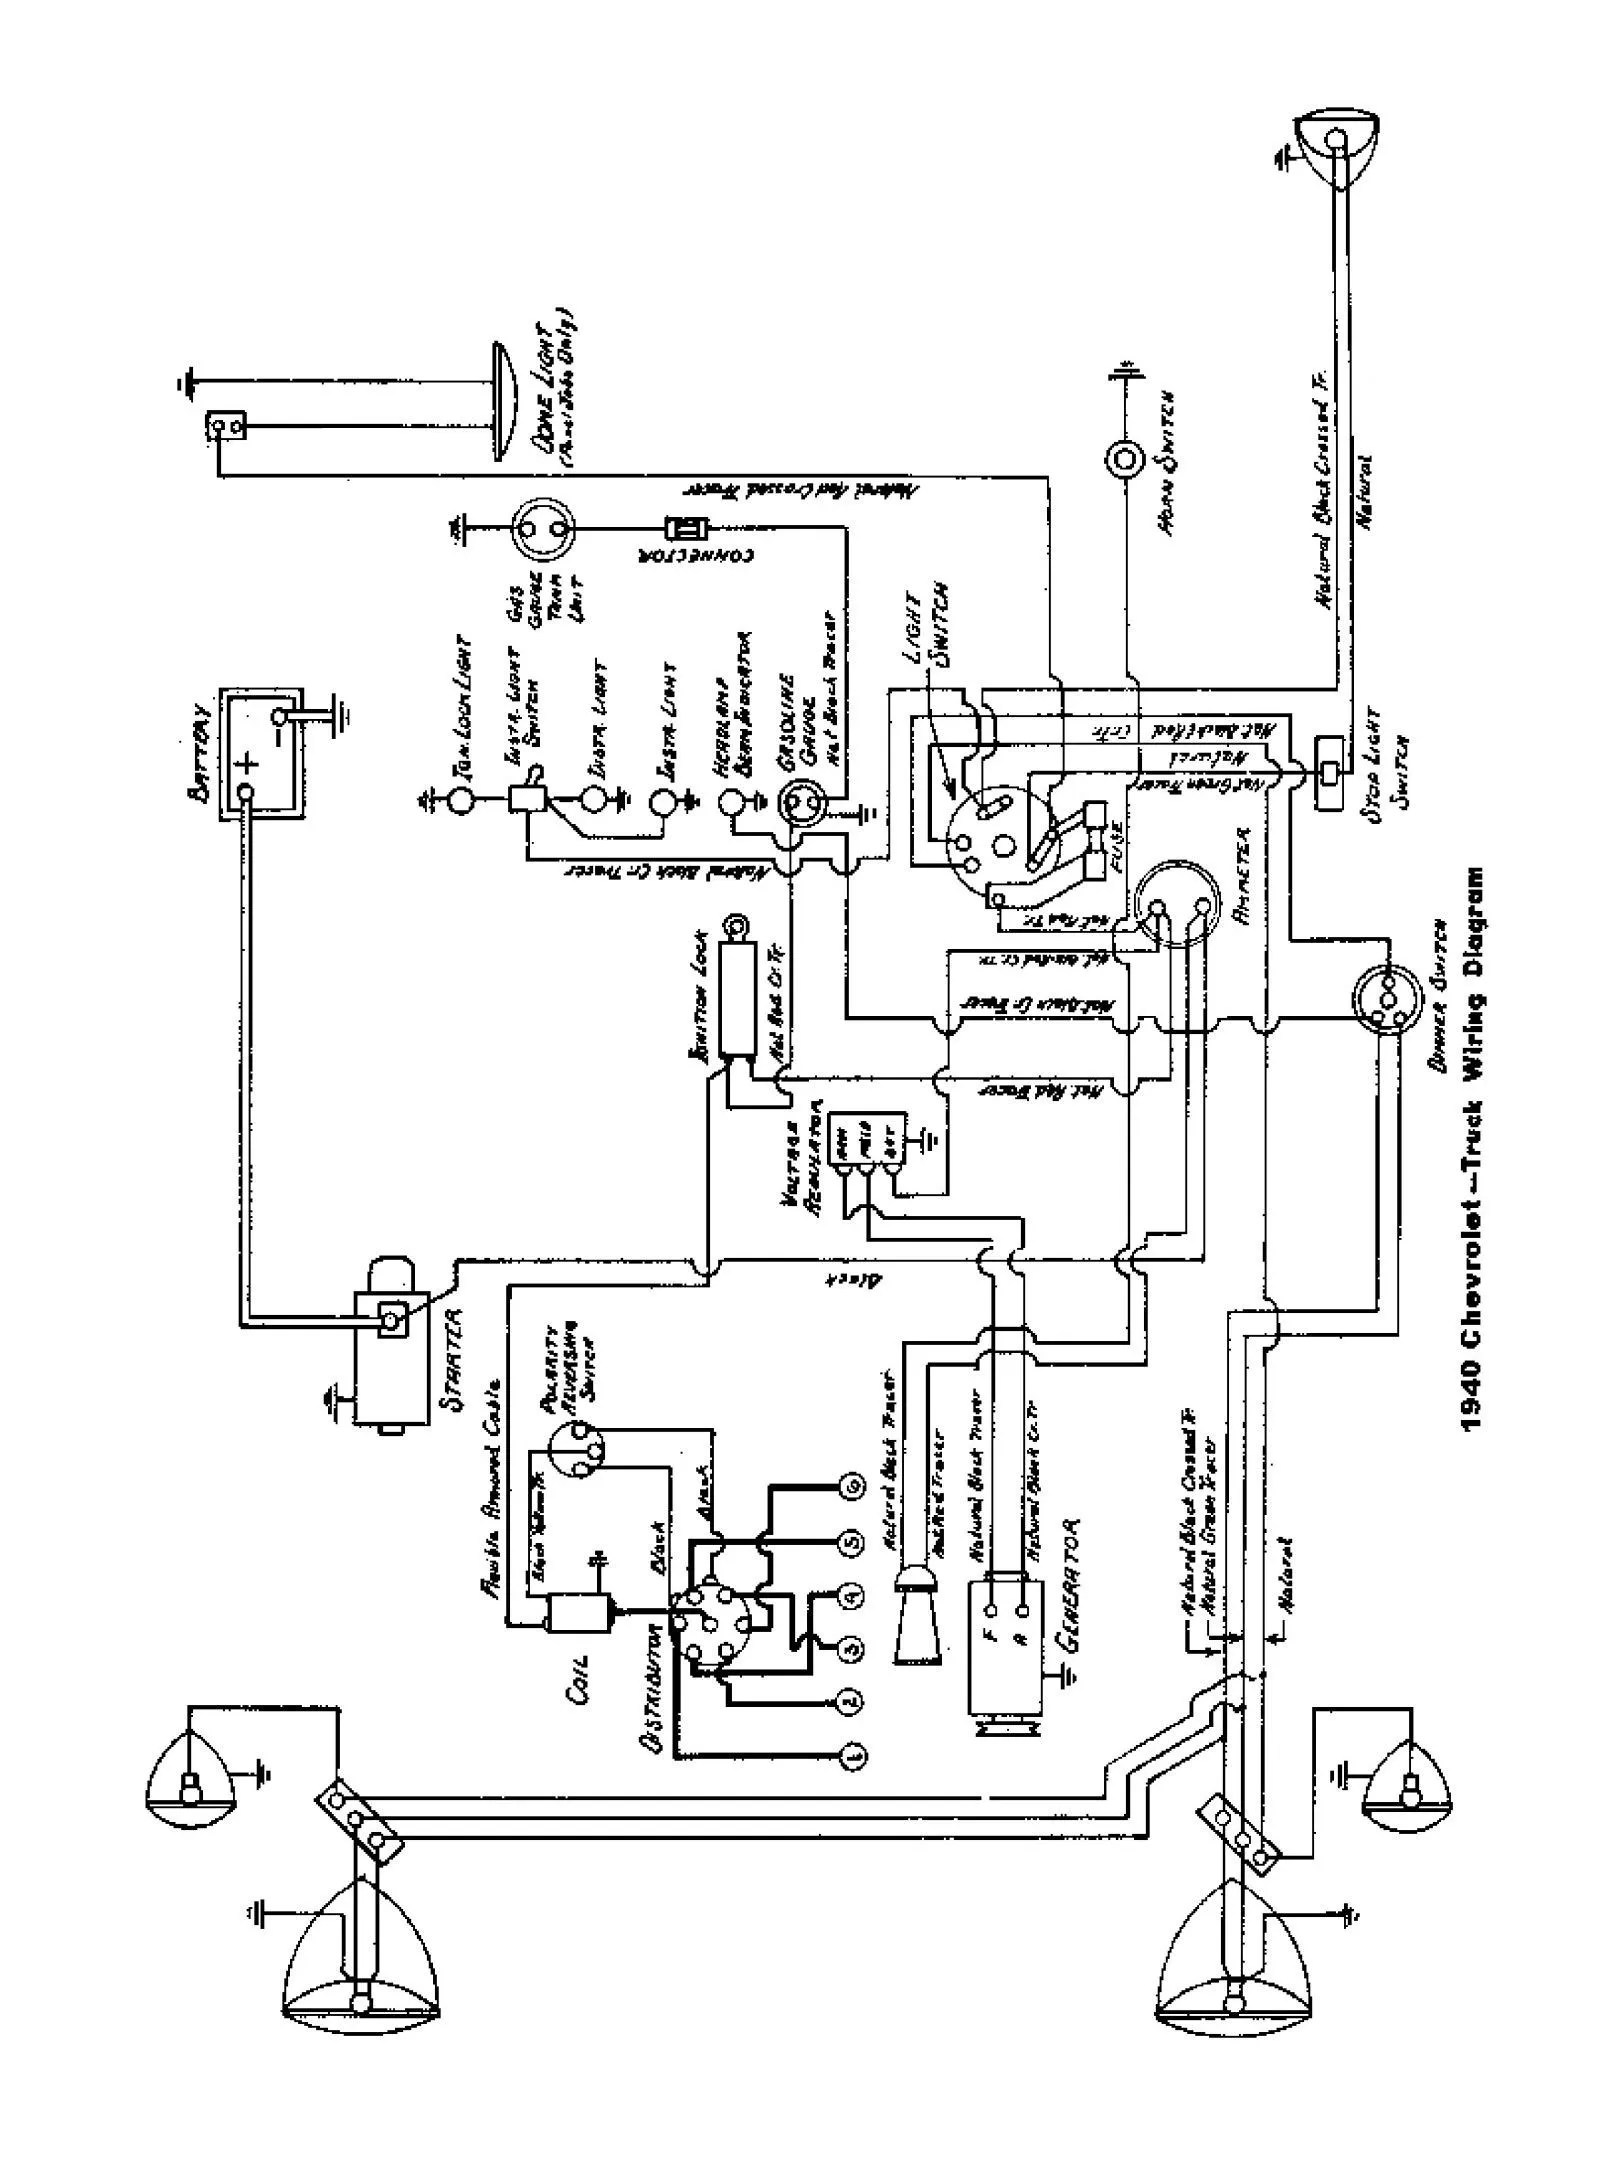 hight resolution of 46 chevy sedan wiring diagram wiring diagram paper 1946 chevy pickup ignition wiring diagram schematic wiring